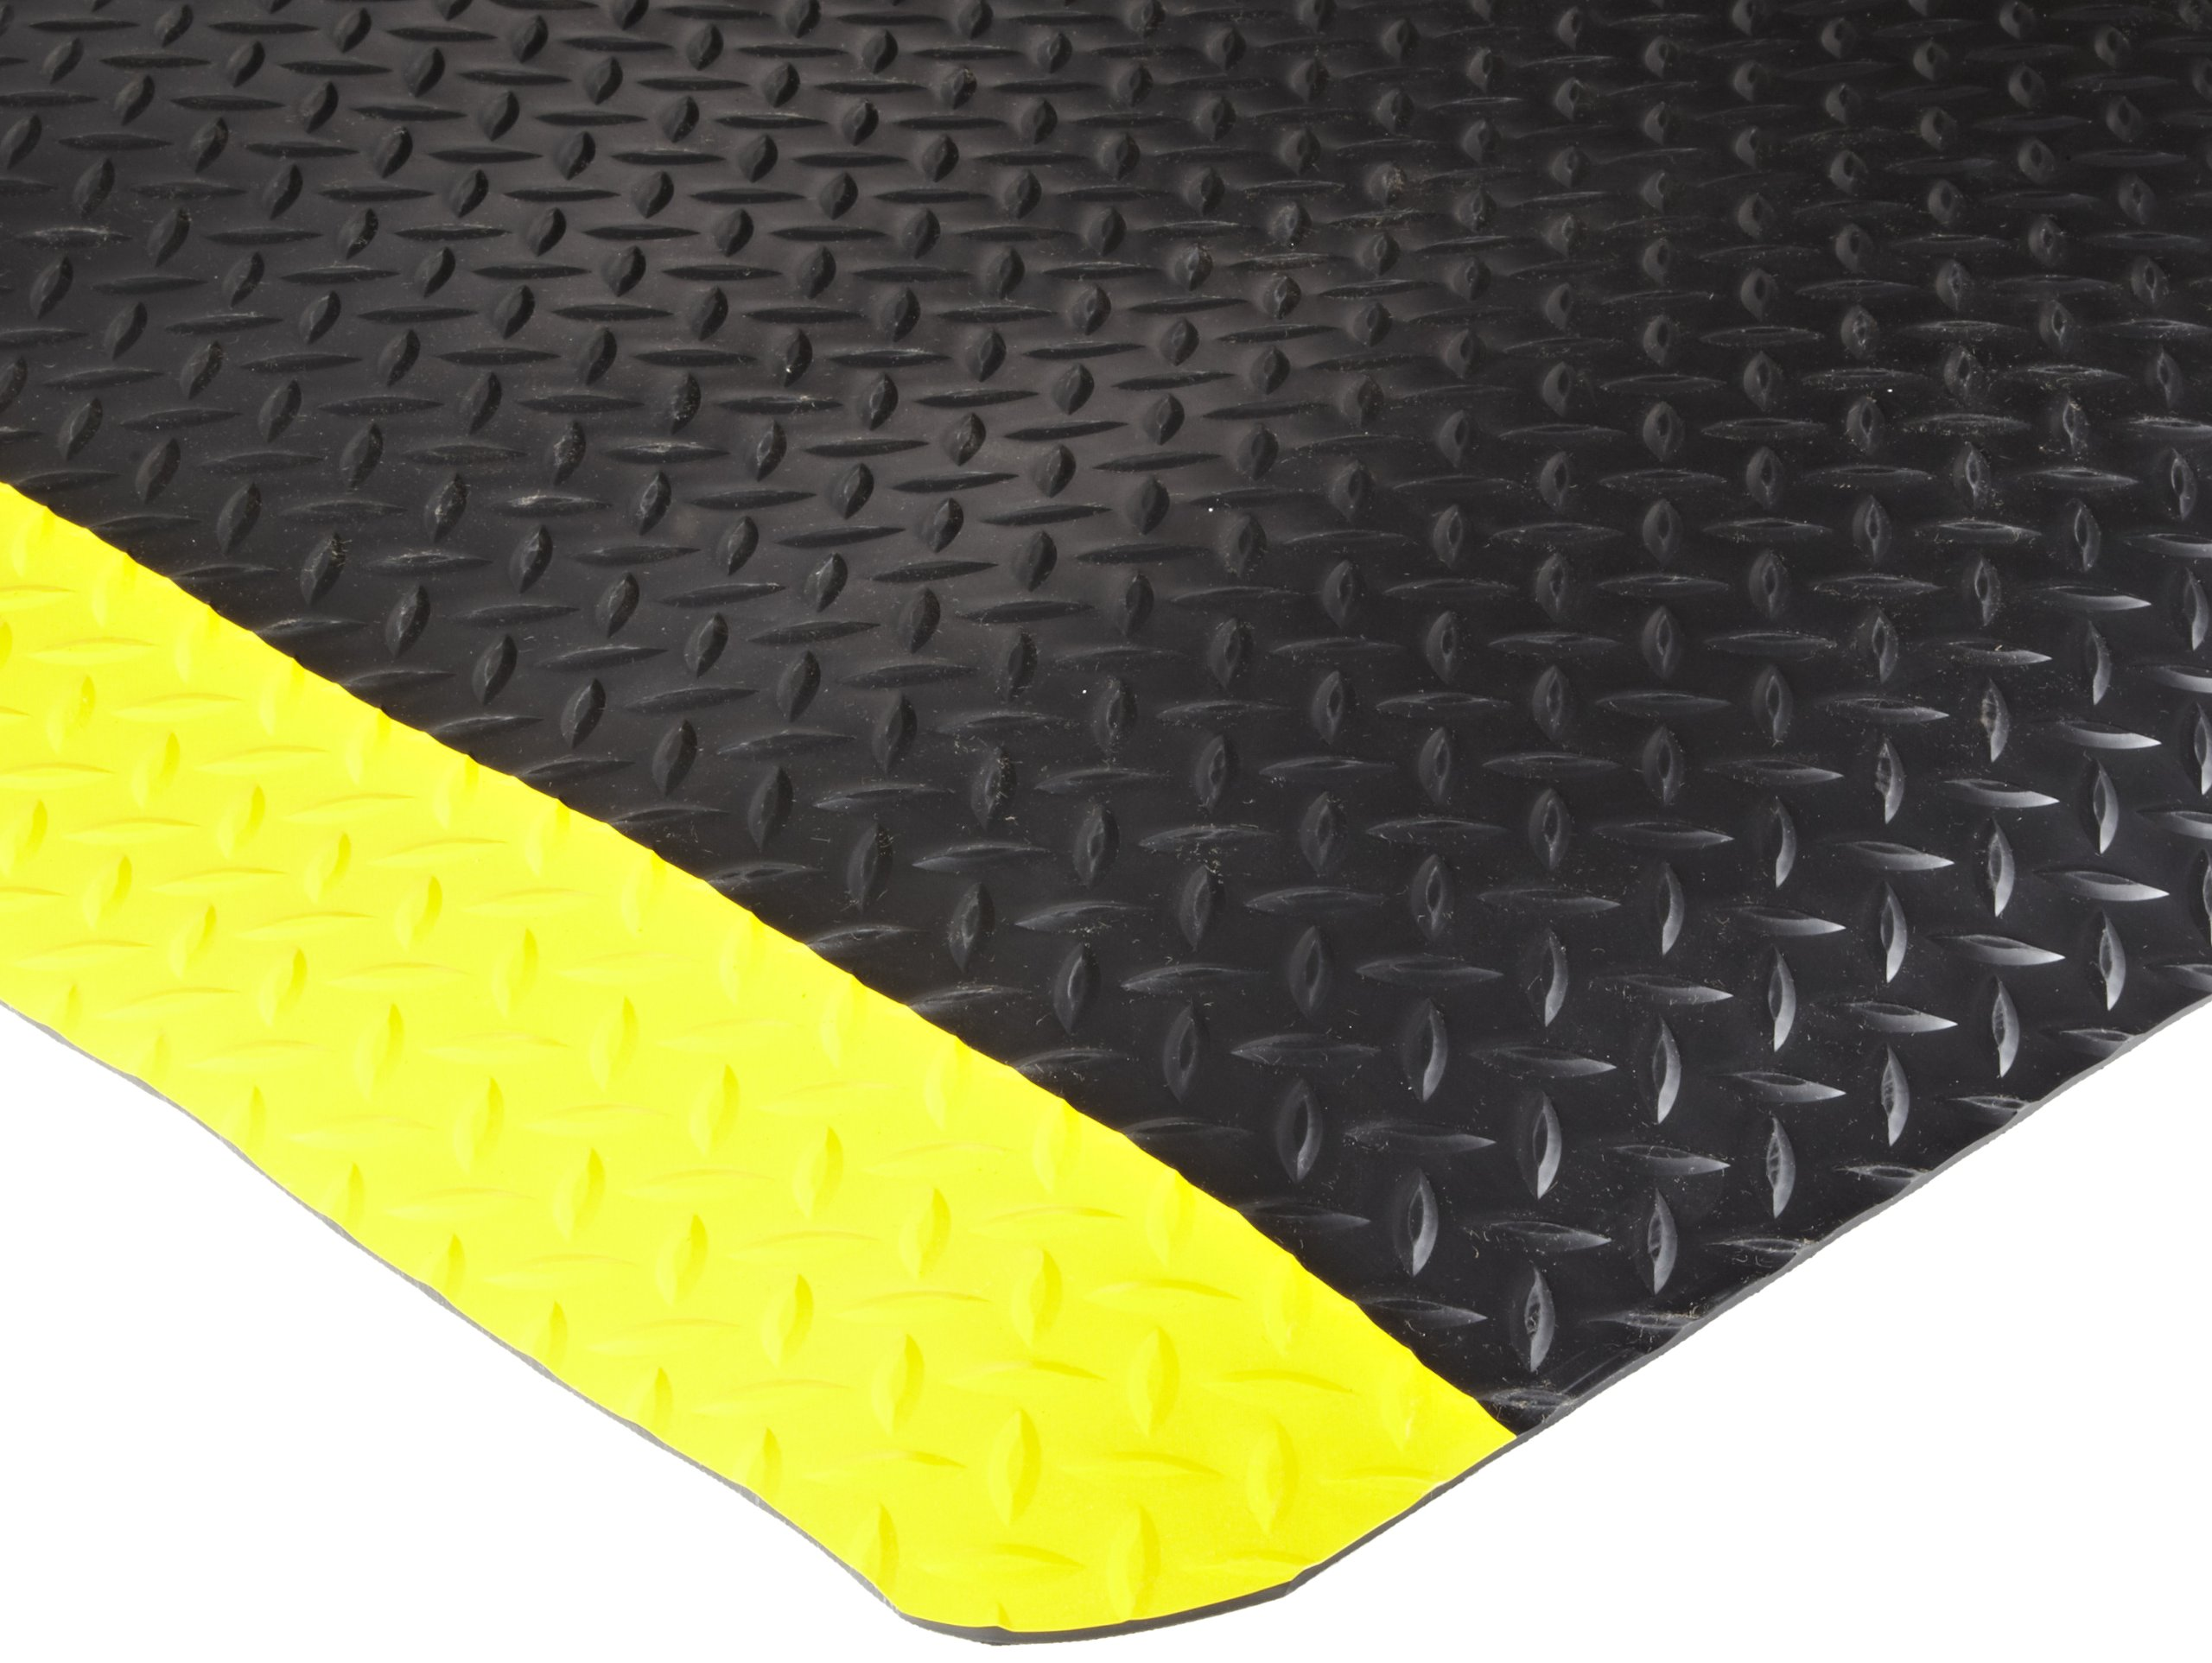 Durable Corporation Vinyl Heavy Duty Diamond-Dek Sponge Anti-Fatigue Mat, 36'' Width x 60'' Length x 0.875'' Thickness, Black with Yellow Border